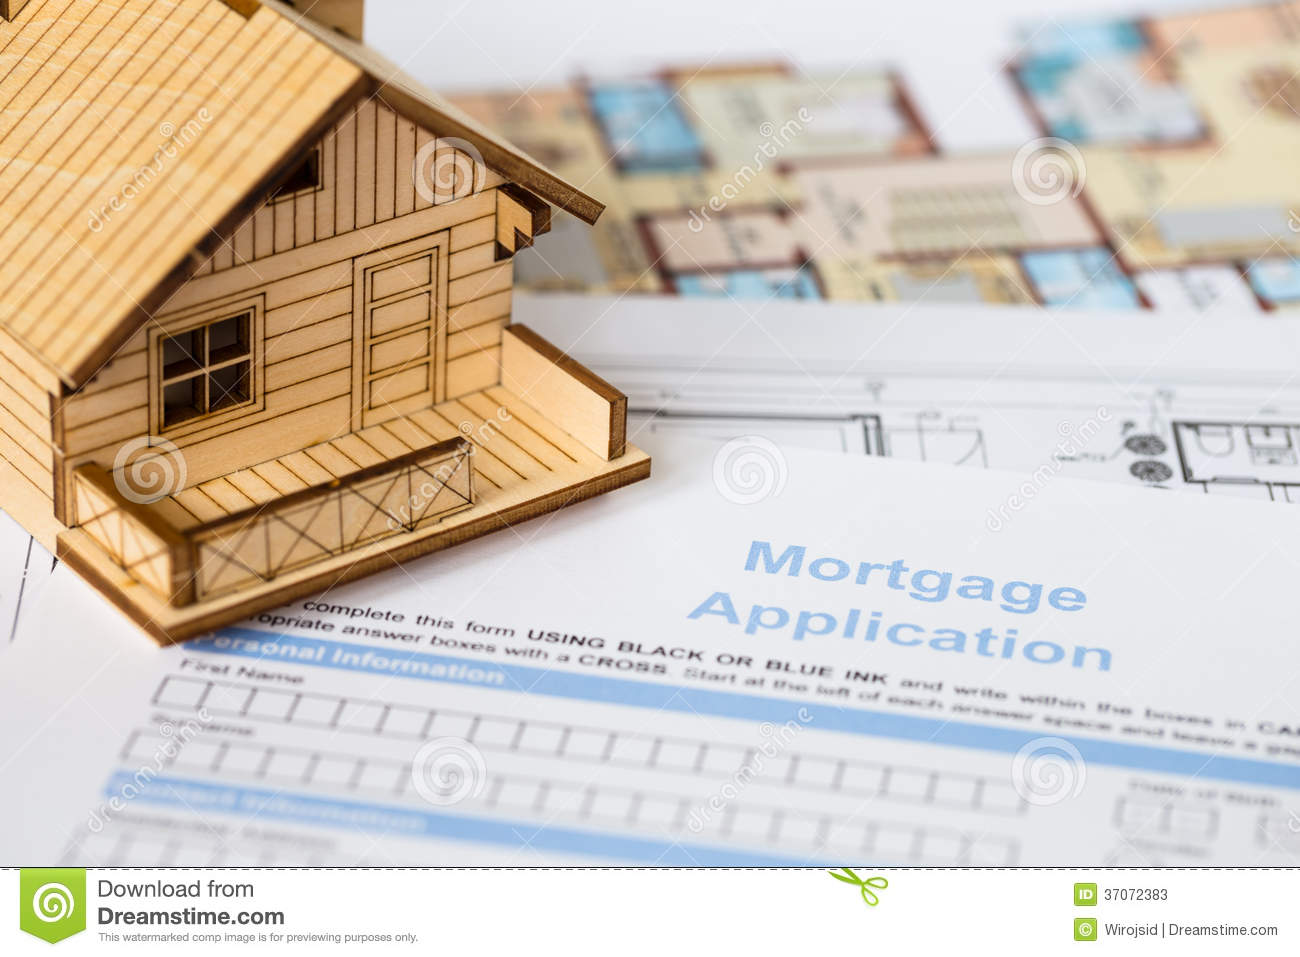 House mortgage application with model house stock image for Building a house loan options